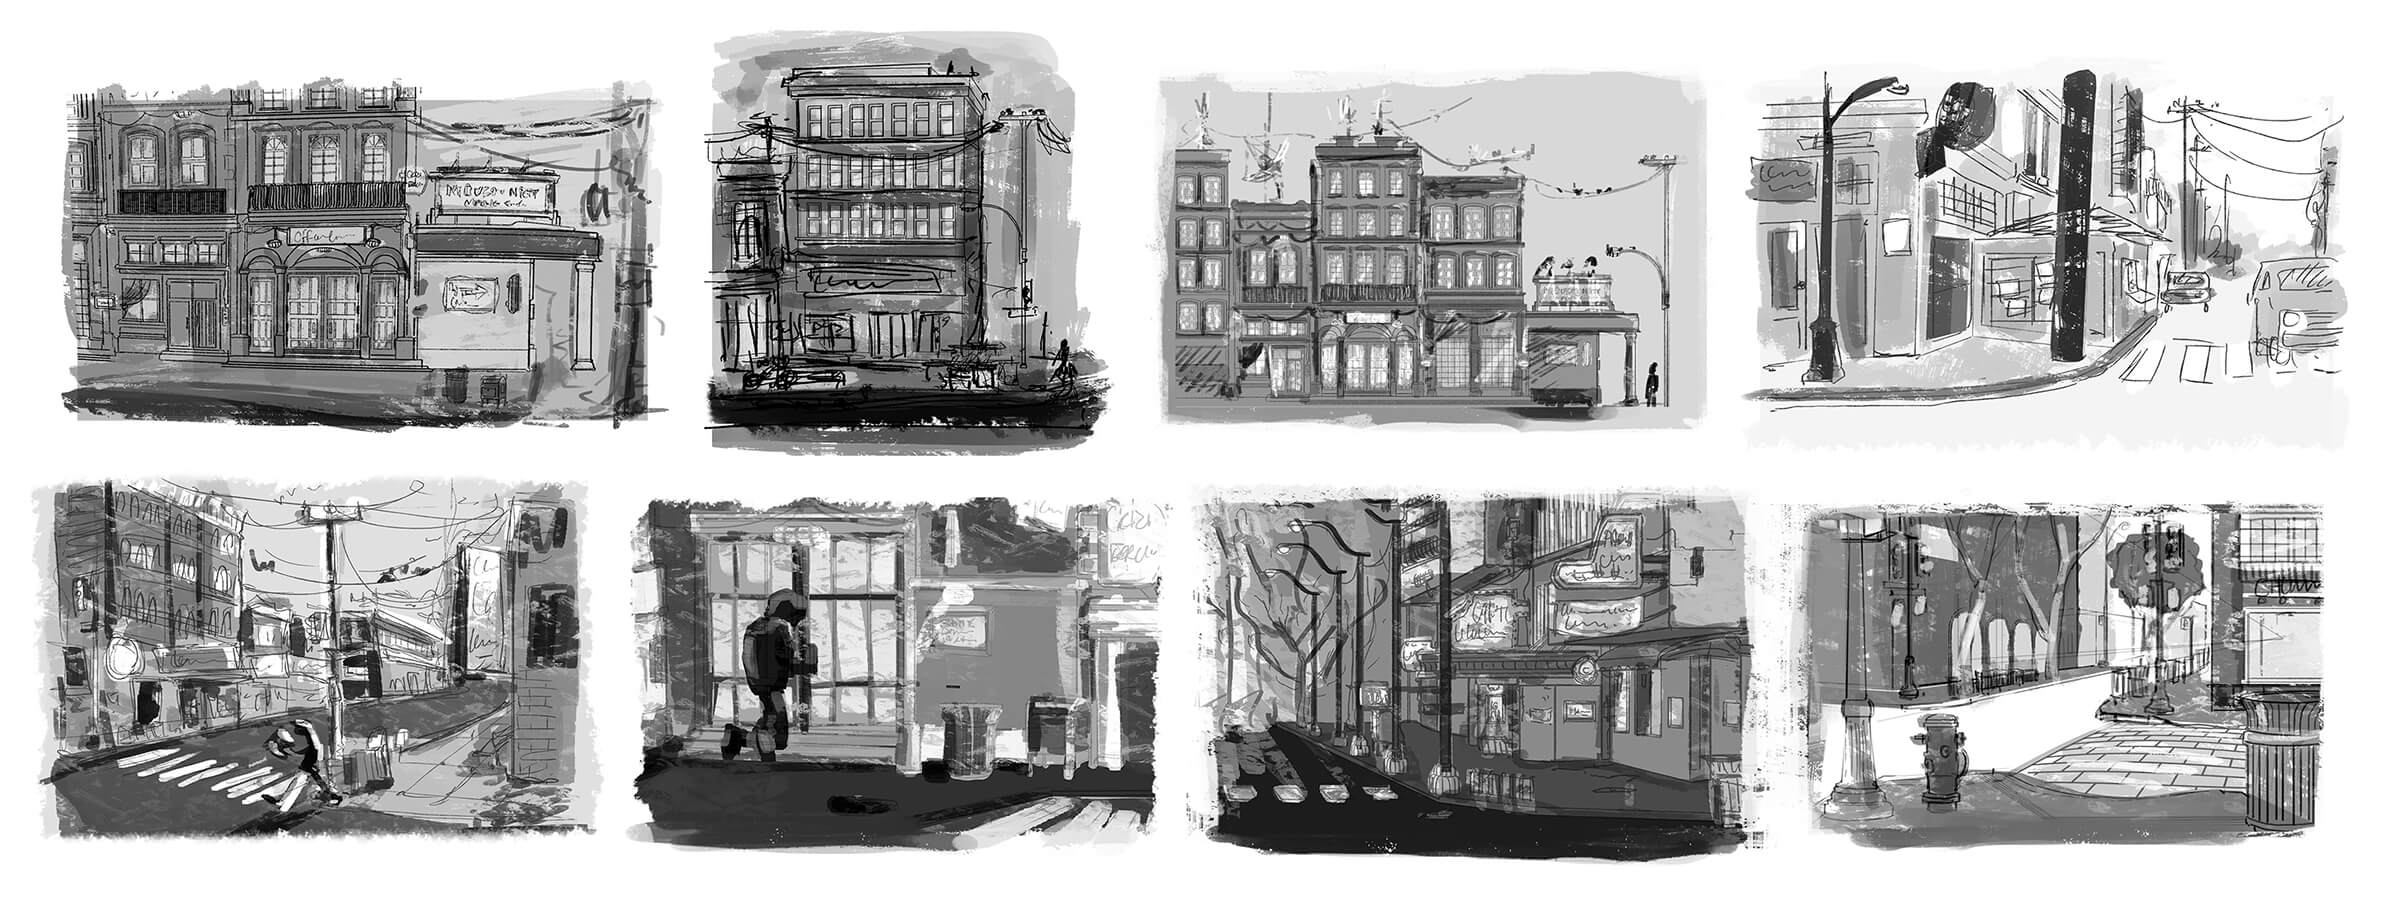 black and white drawings of various street scenes